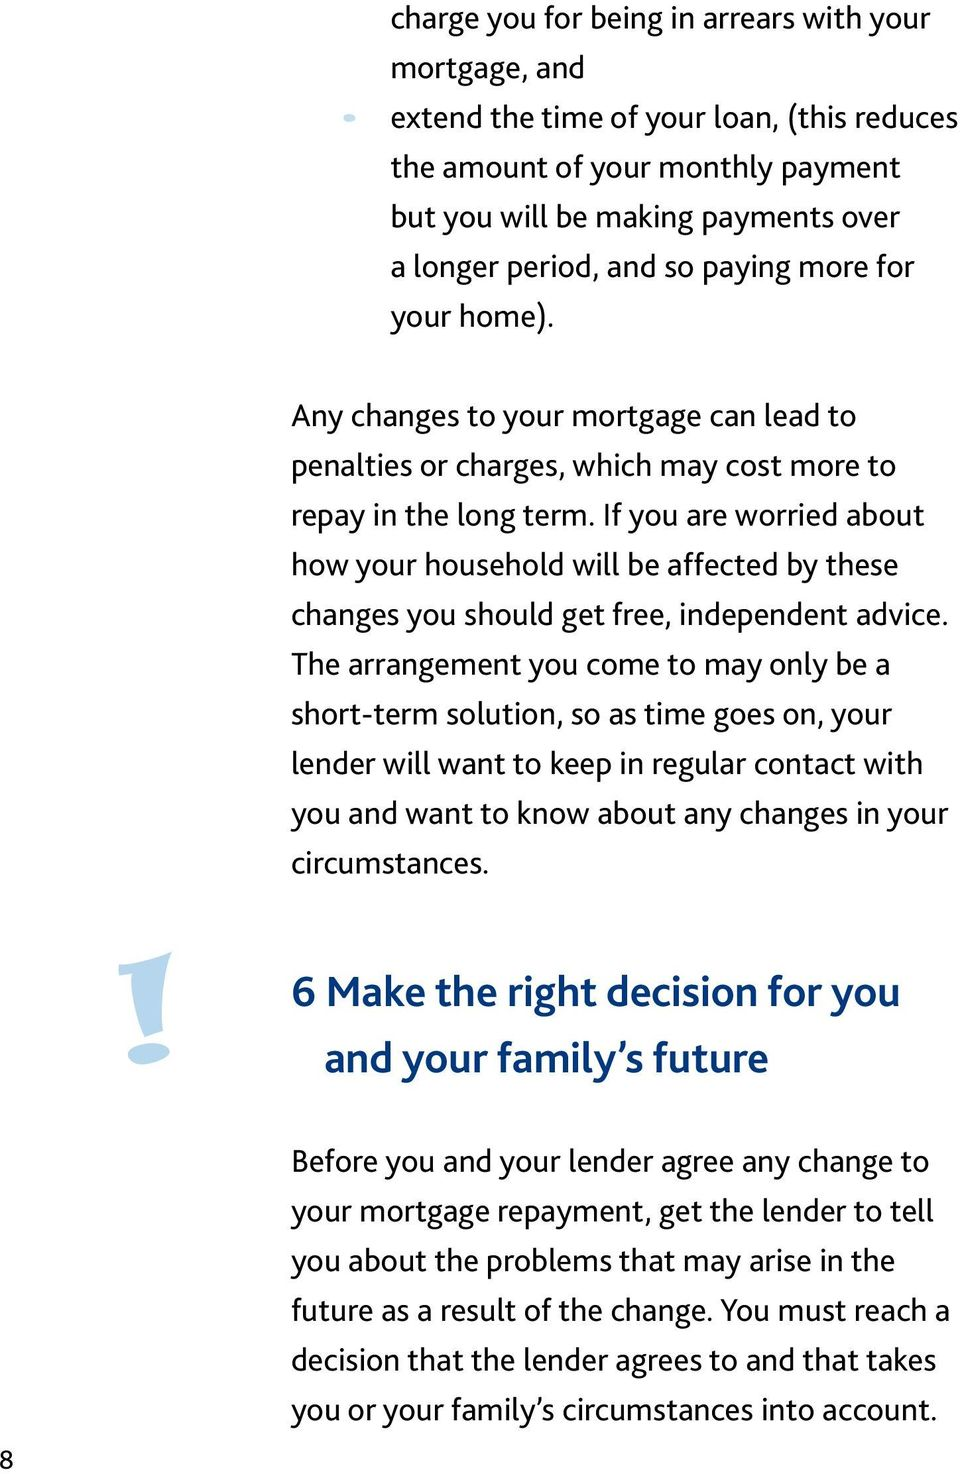 If you are worried about how your household will be affected by these changes you should get free, independent advice.